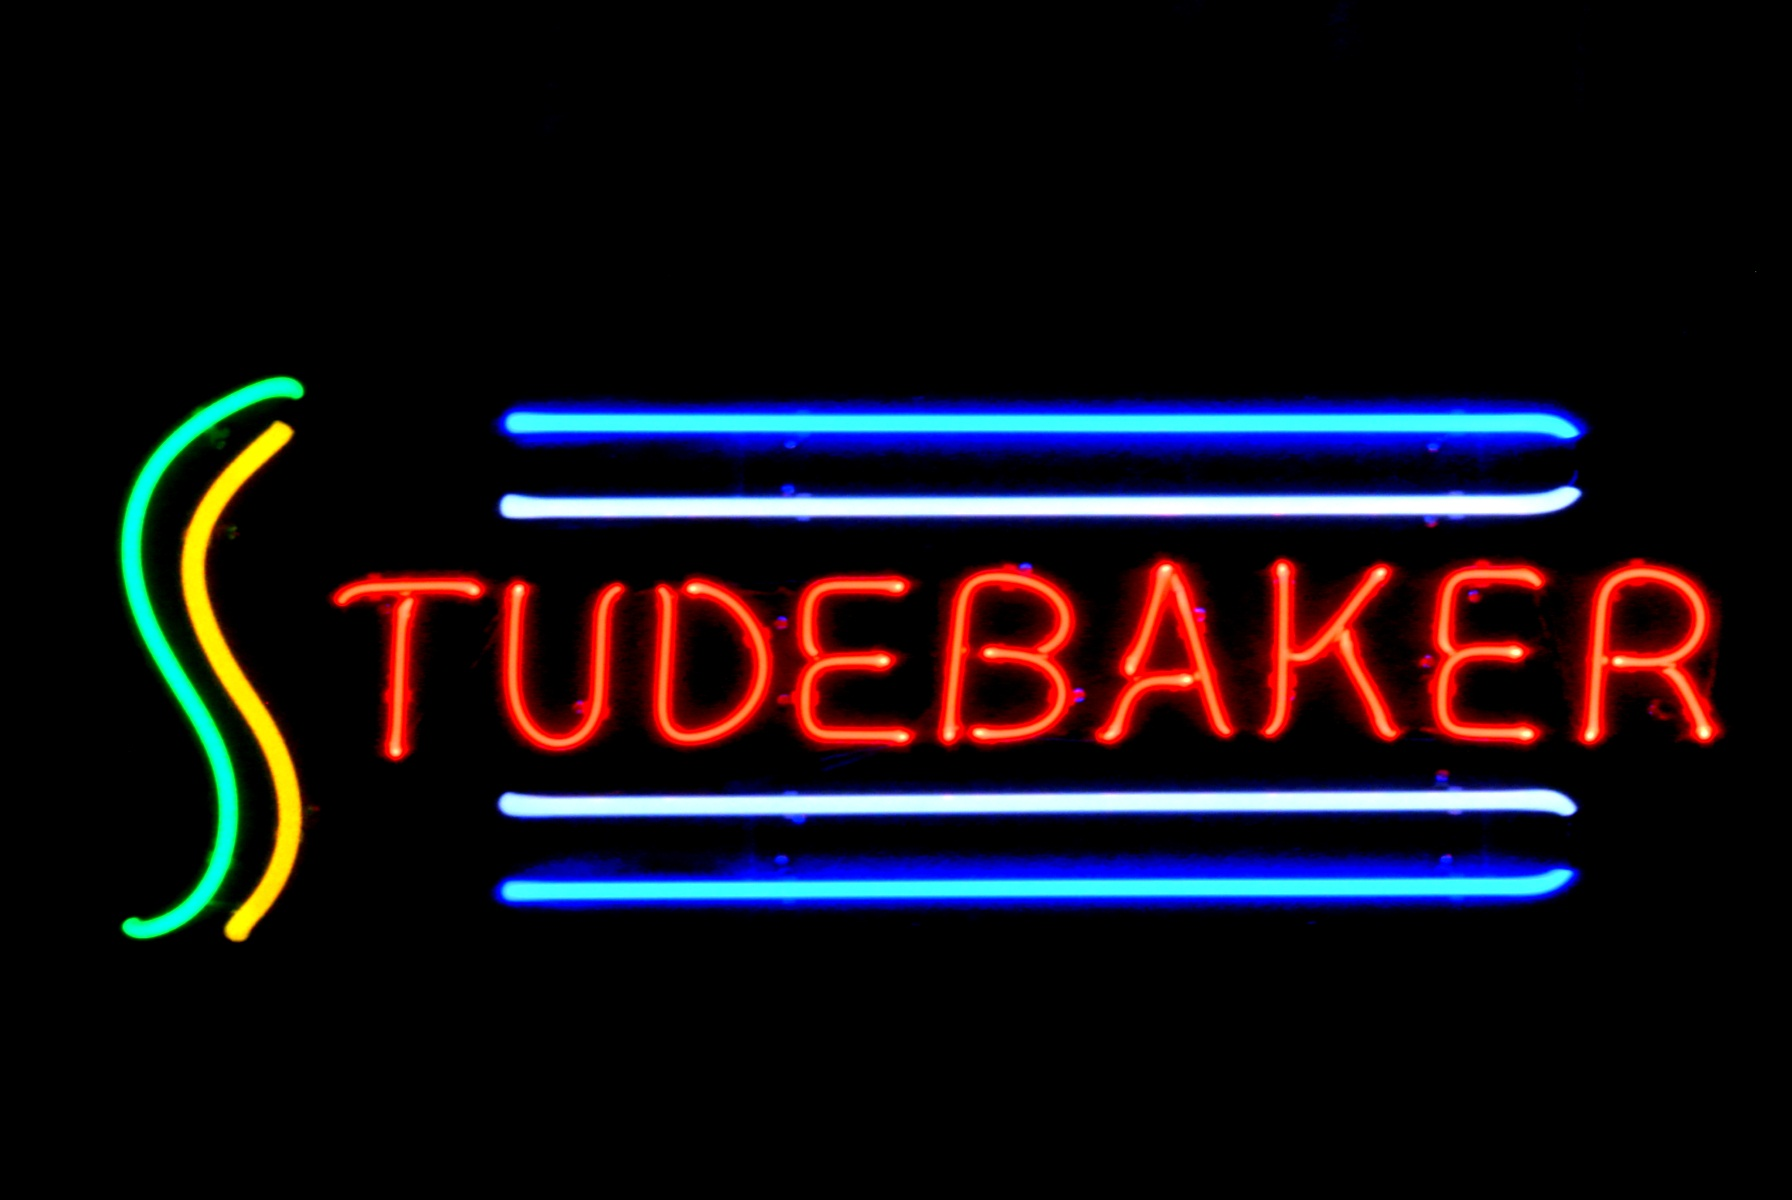 Studebaker Dealership Neon Sign.jpg